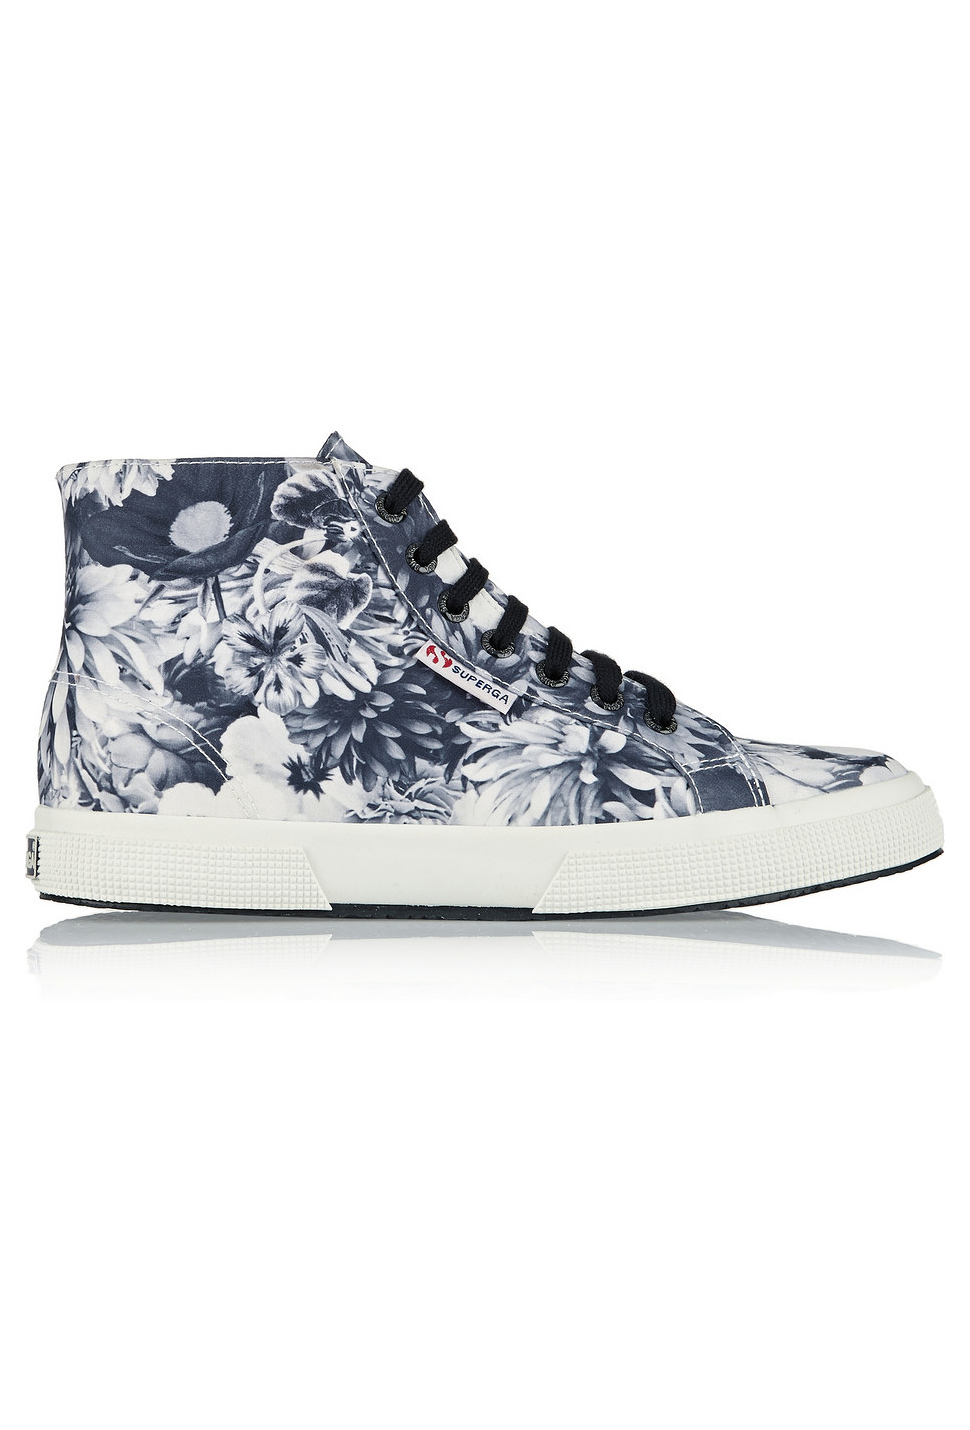 8c4529d63109 SUPERGA Floral-print satin sneakers - was  99.0